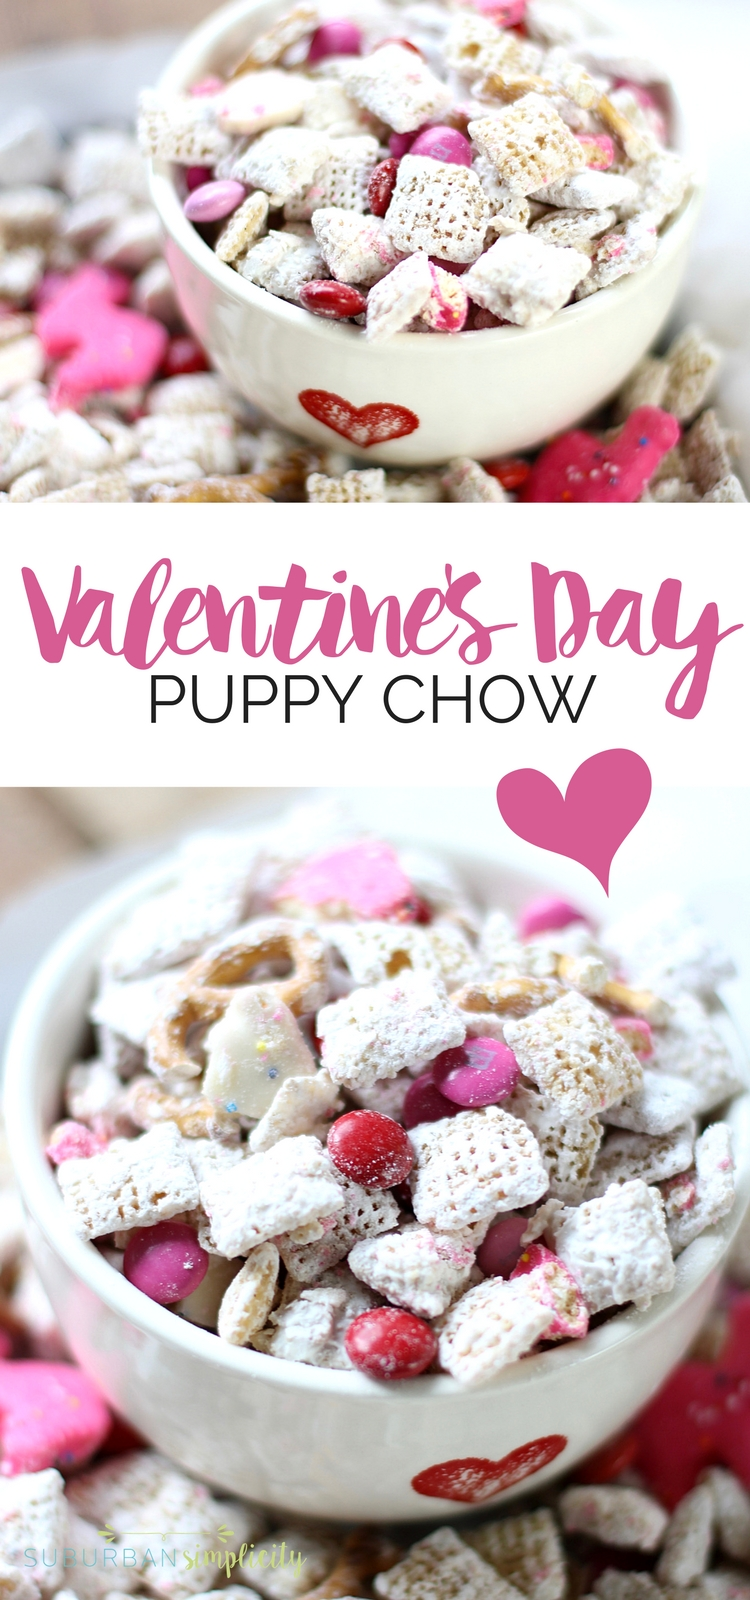 Valentine's Day Puppy Chow is the perfect treat for the holiday.  An amazing combination of salty and sweet that's kinda addictive!  With a few simple ingredients you can munch on this delicious dessert in minutes.